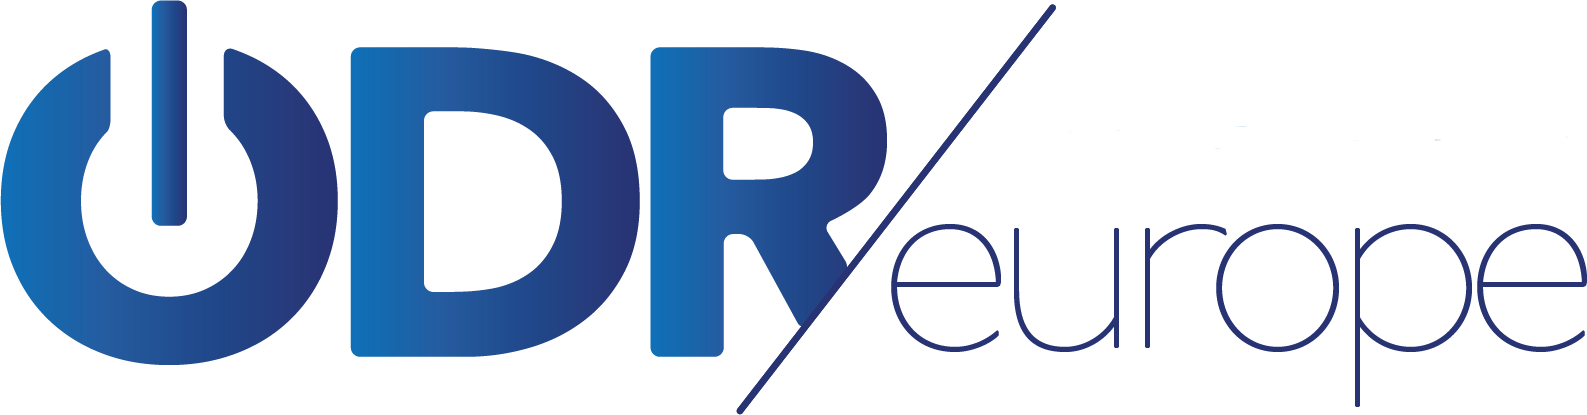 odreurope